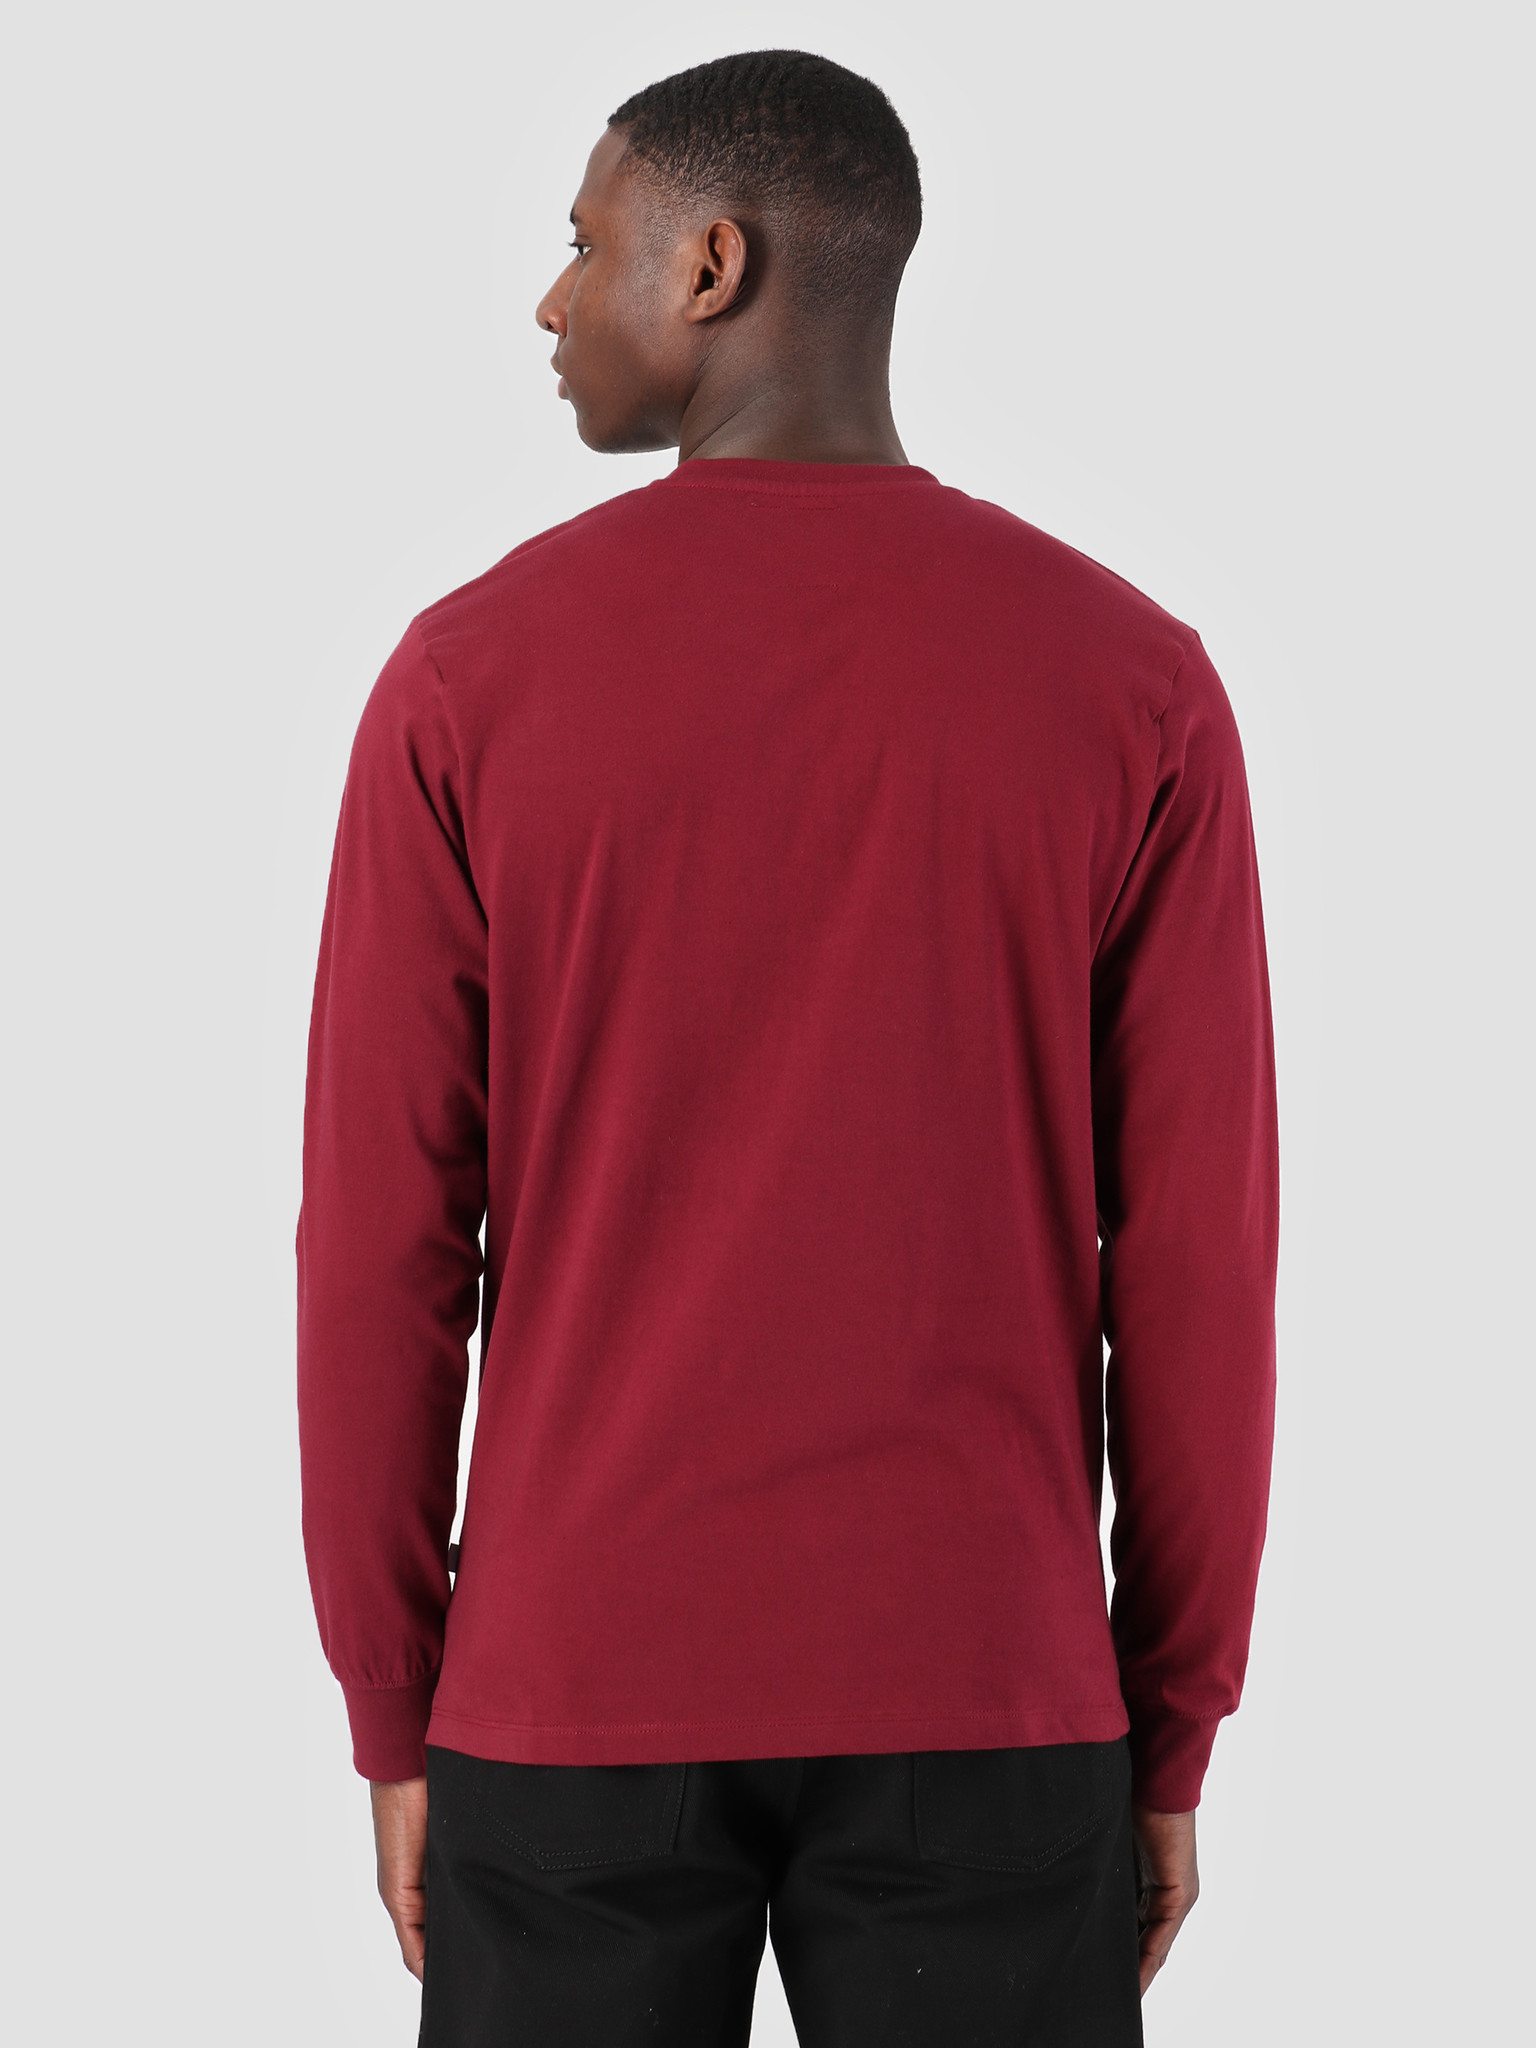 Quality Blanks Quality Blanks QB05 Patch Logo Longsleeve Burgundy Red